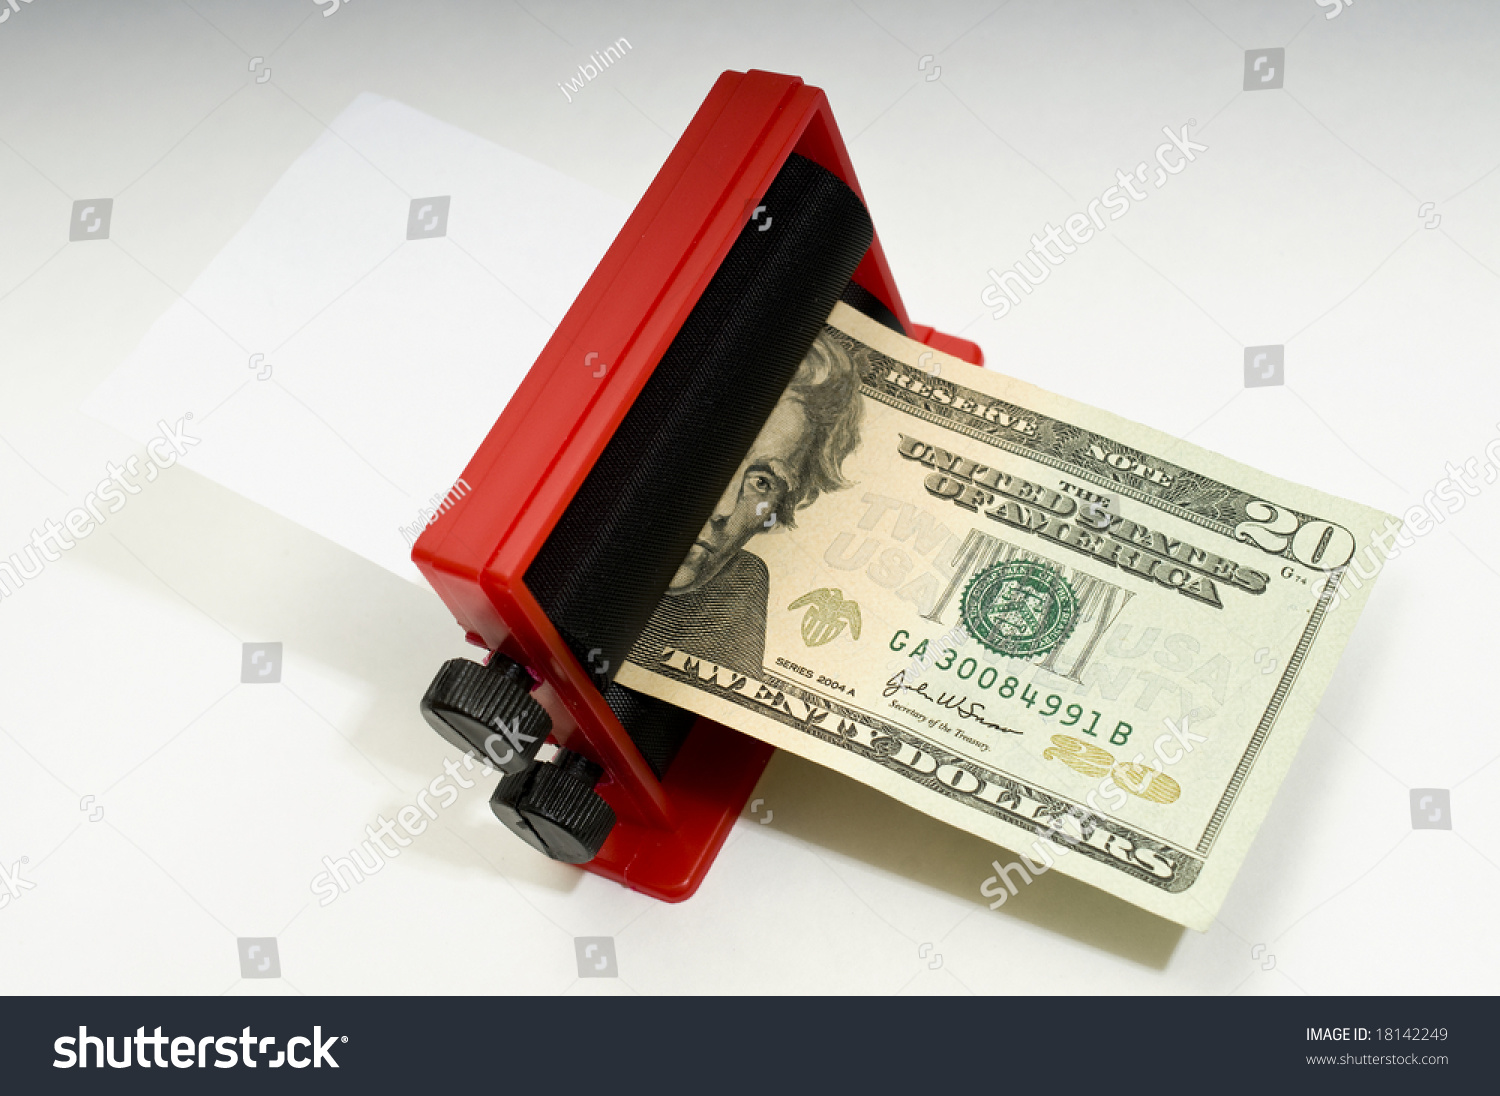 Printing Money Concept      Dollar Bills USA Currency Stock     Serbia     Dinara        Front  Geographer Jovan Cvijic